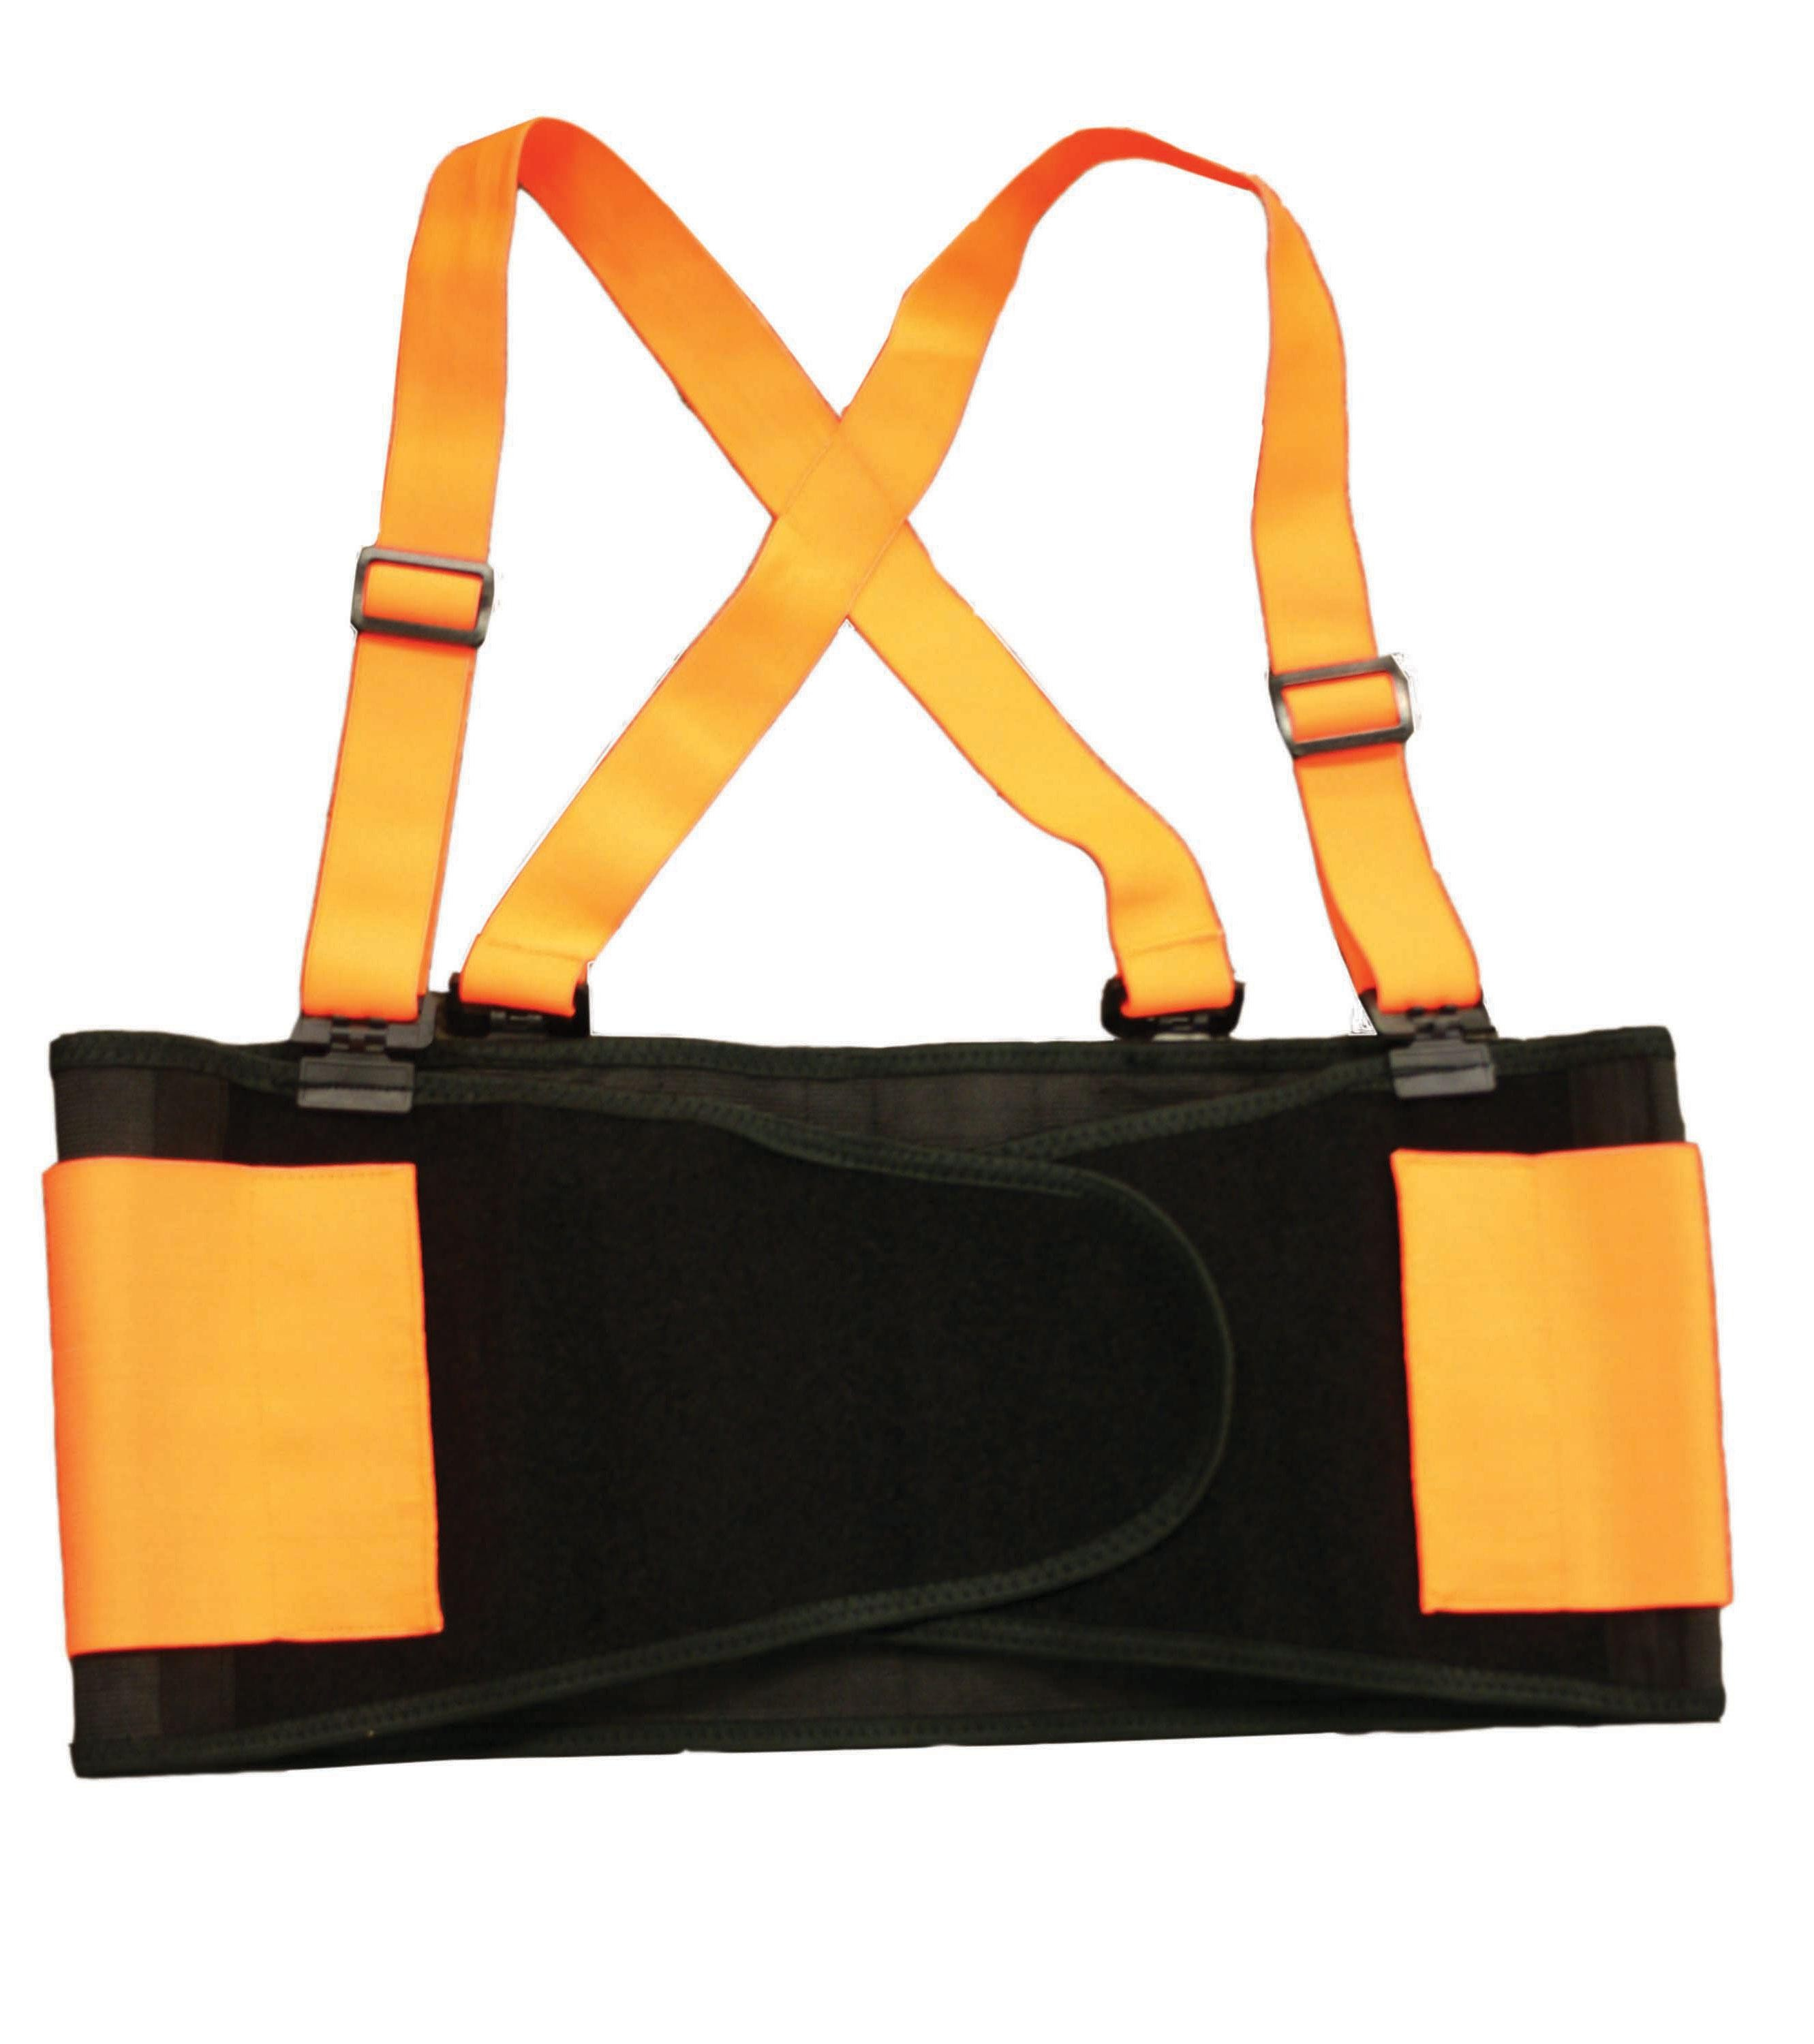 TOTALPACK® Economy Back Support Belt with Suspender - Large Orange/Black, 1 Unit